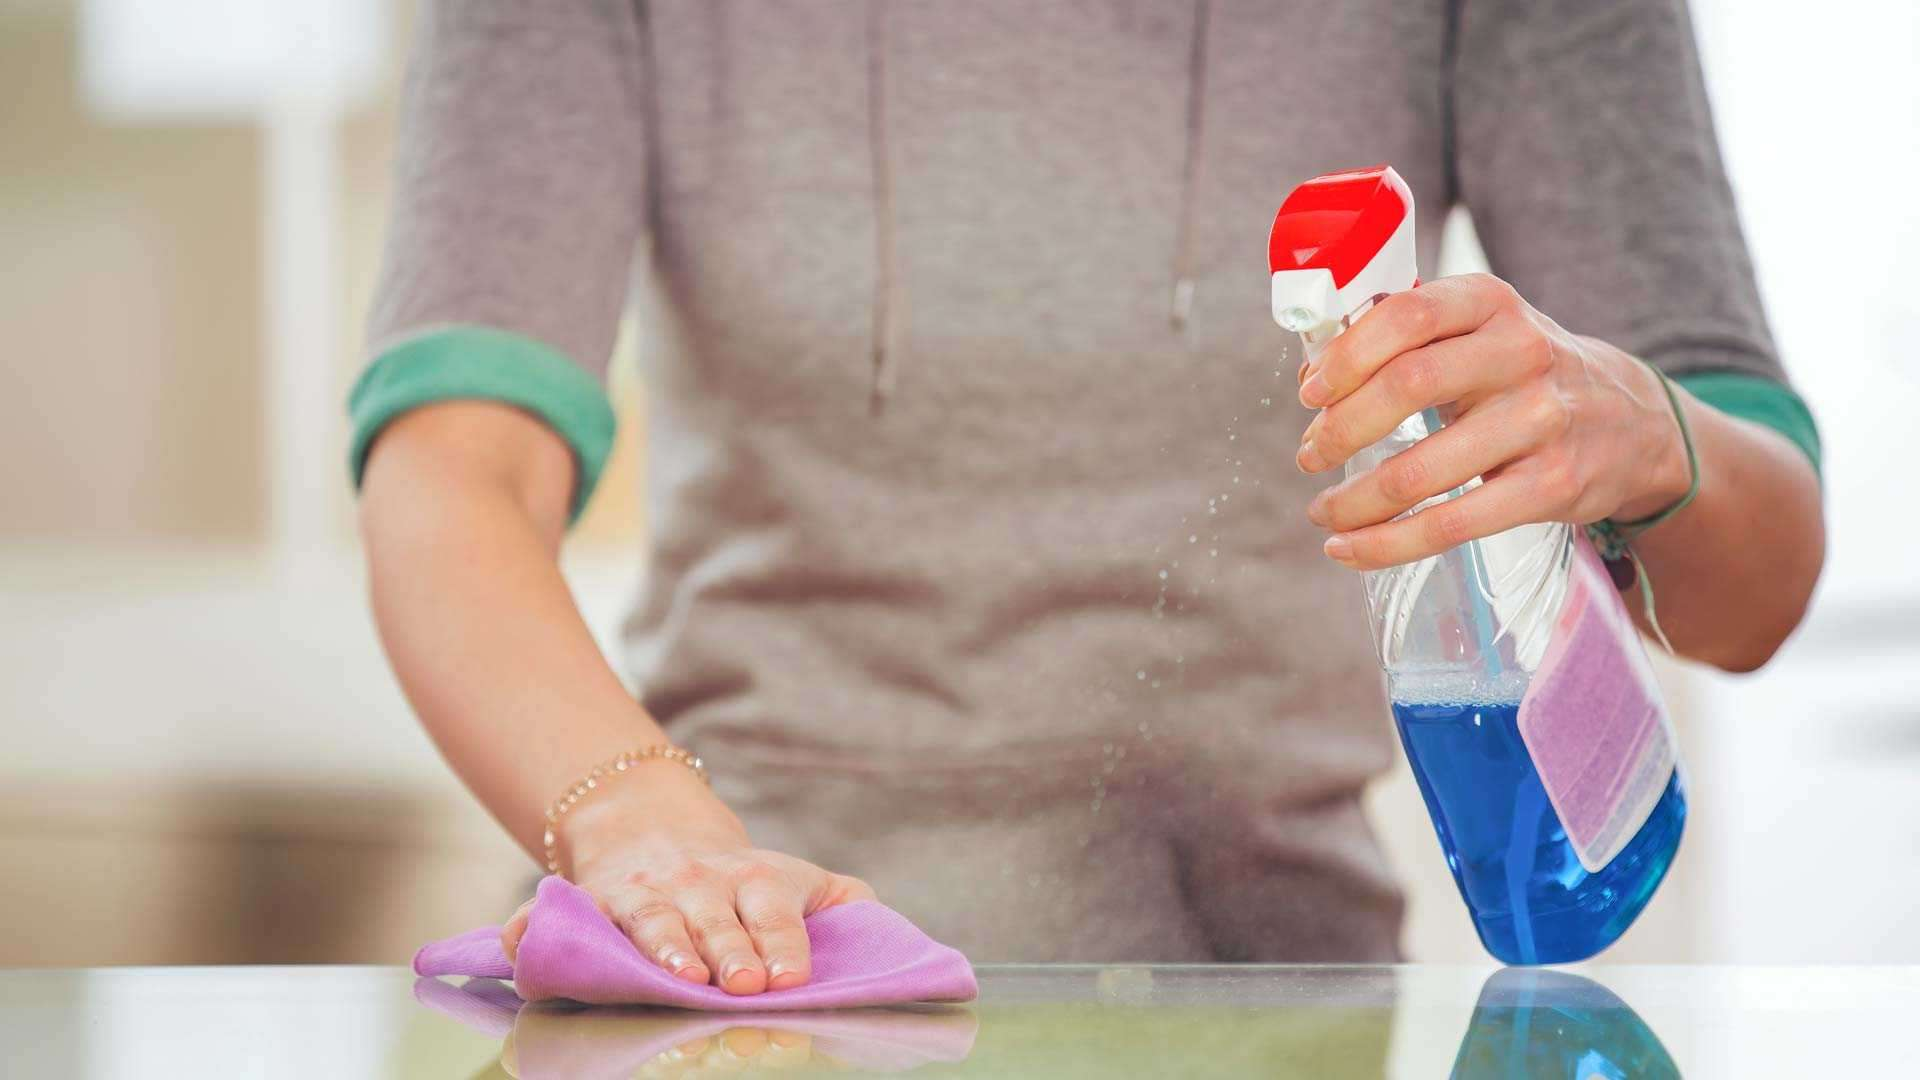 A photo of a person using a spray cleaning product.